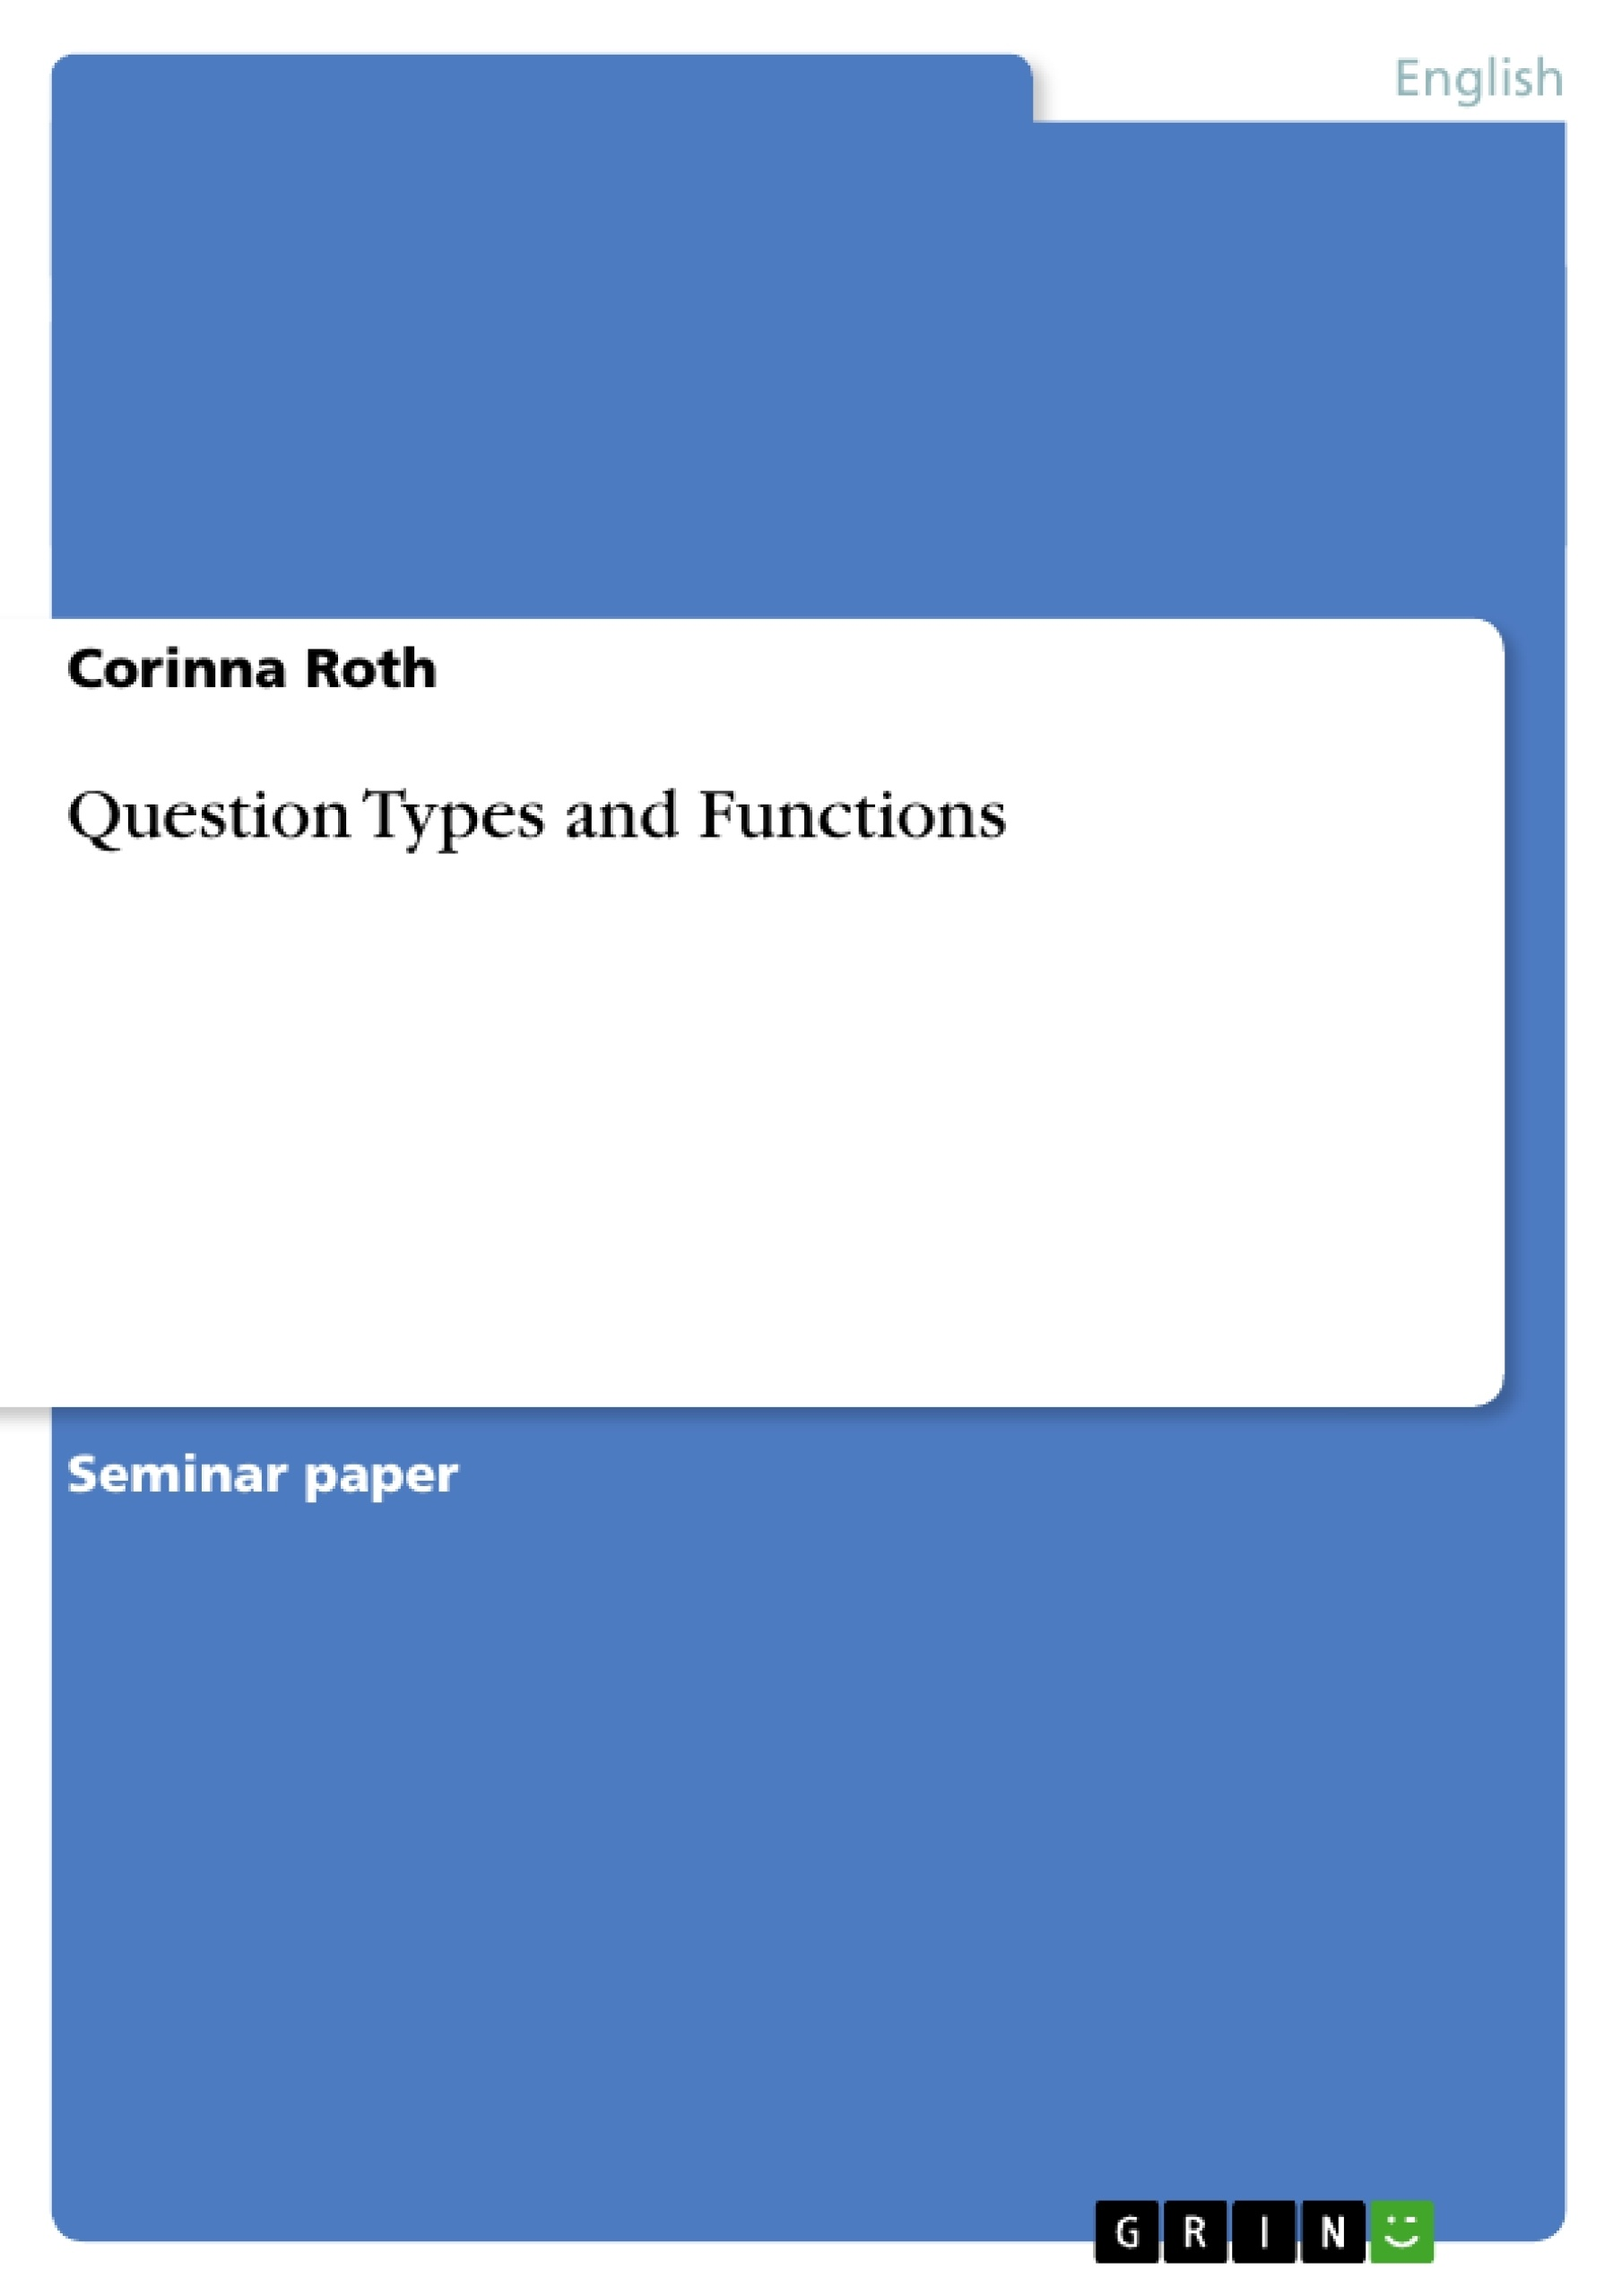 Title: Question Types and Functions